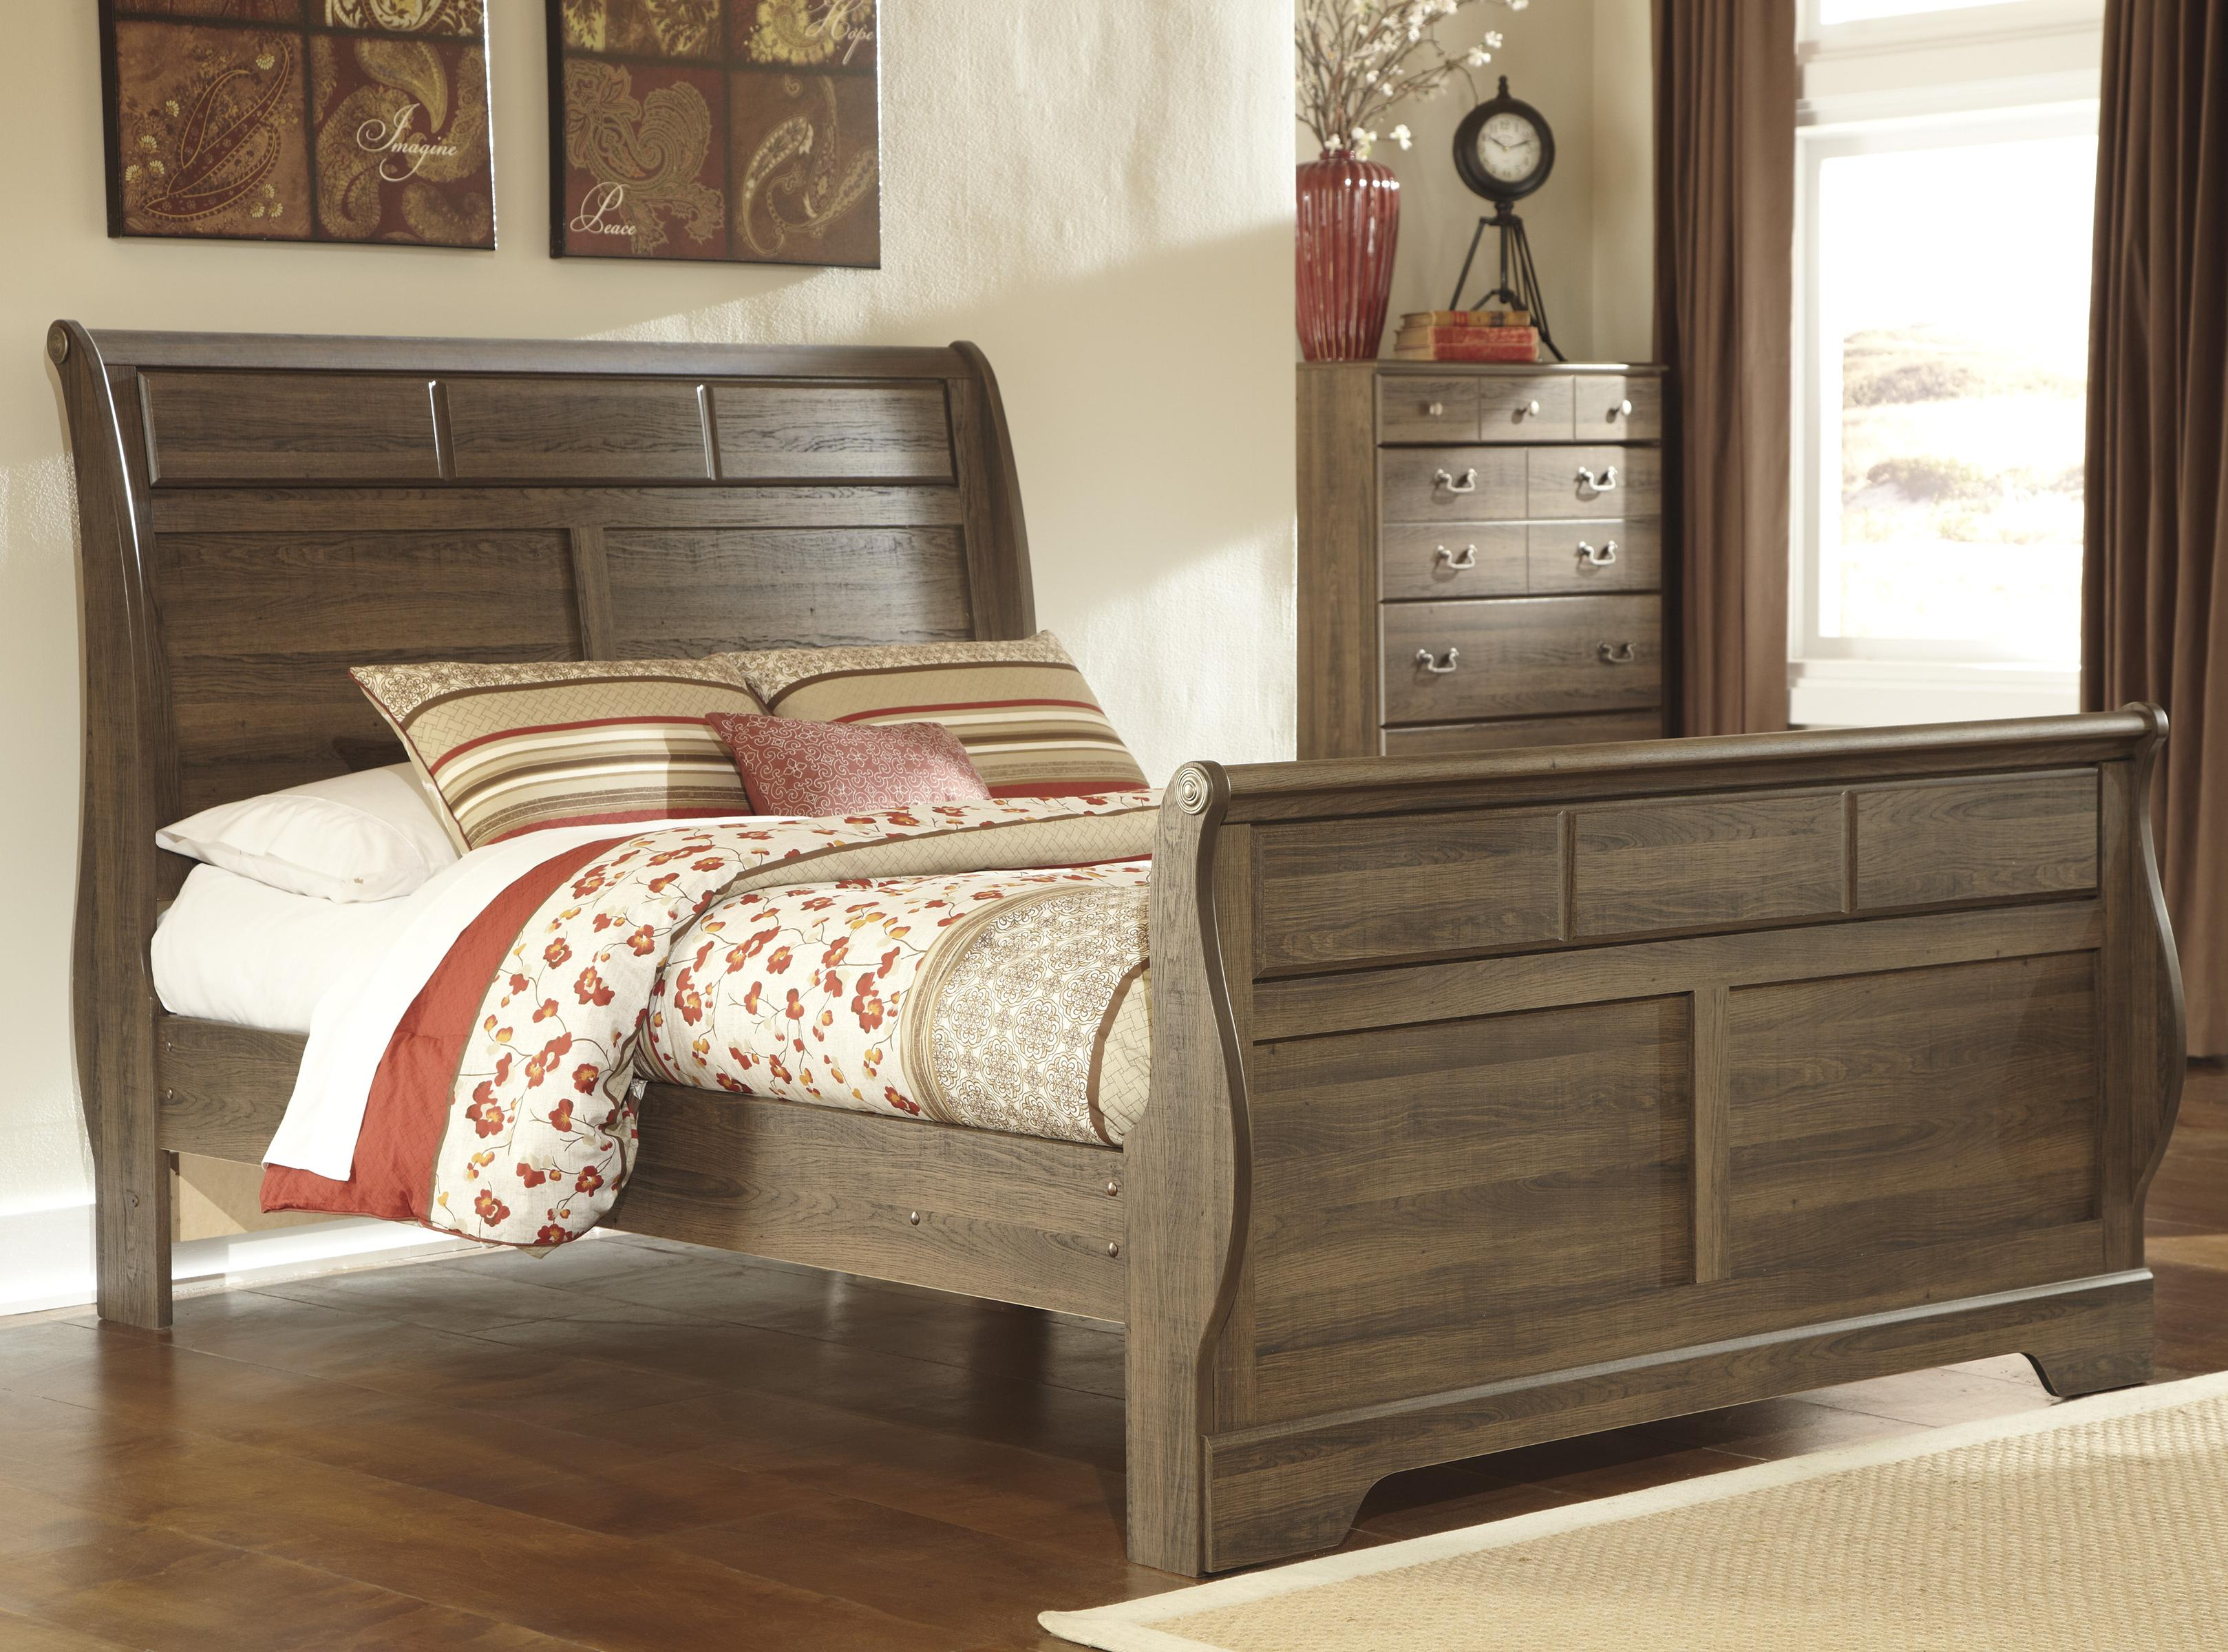 Signature Design by Ashley Allymore Queen Sleigh Bed - Item Number: B216-65+63+86